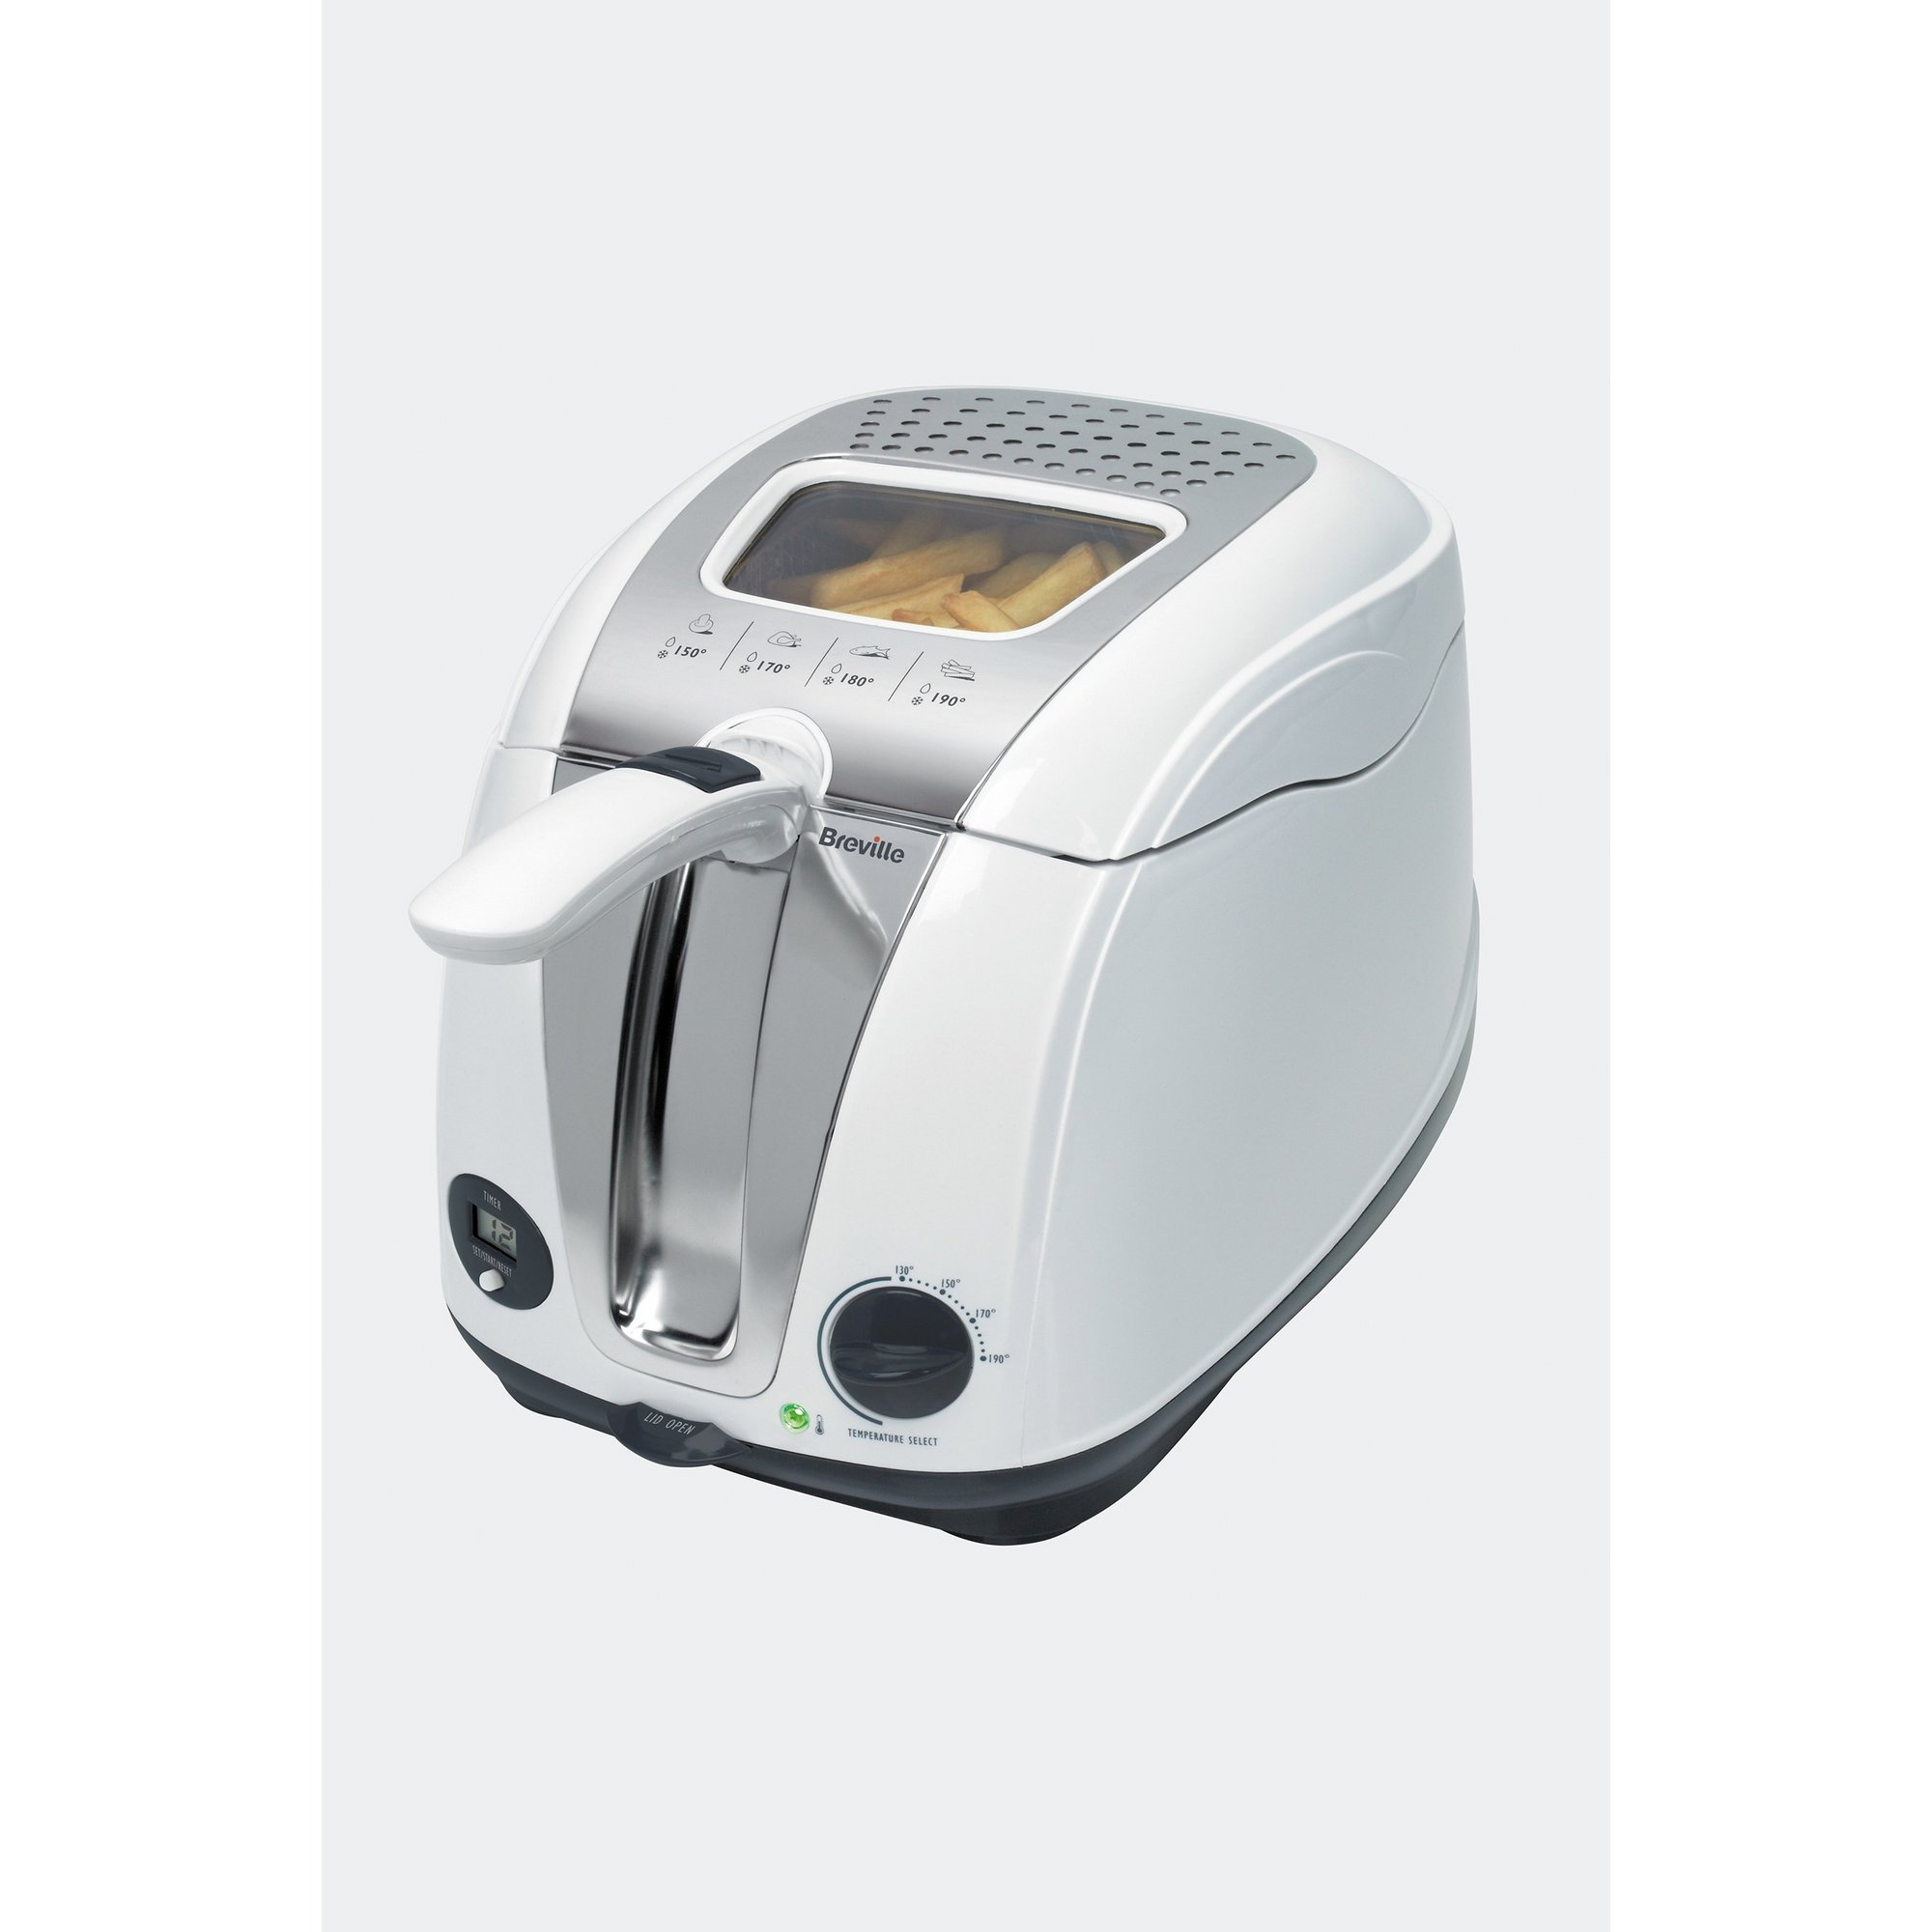 Image of Breville 2 Litre Digital Deep Fat Fryer